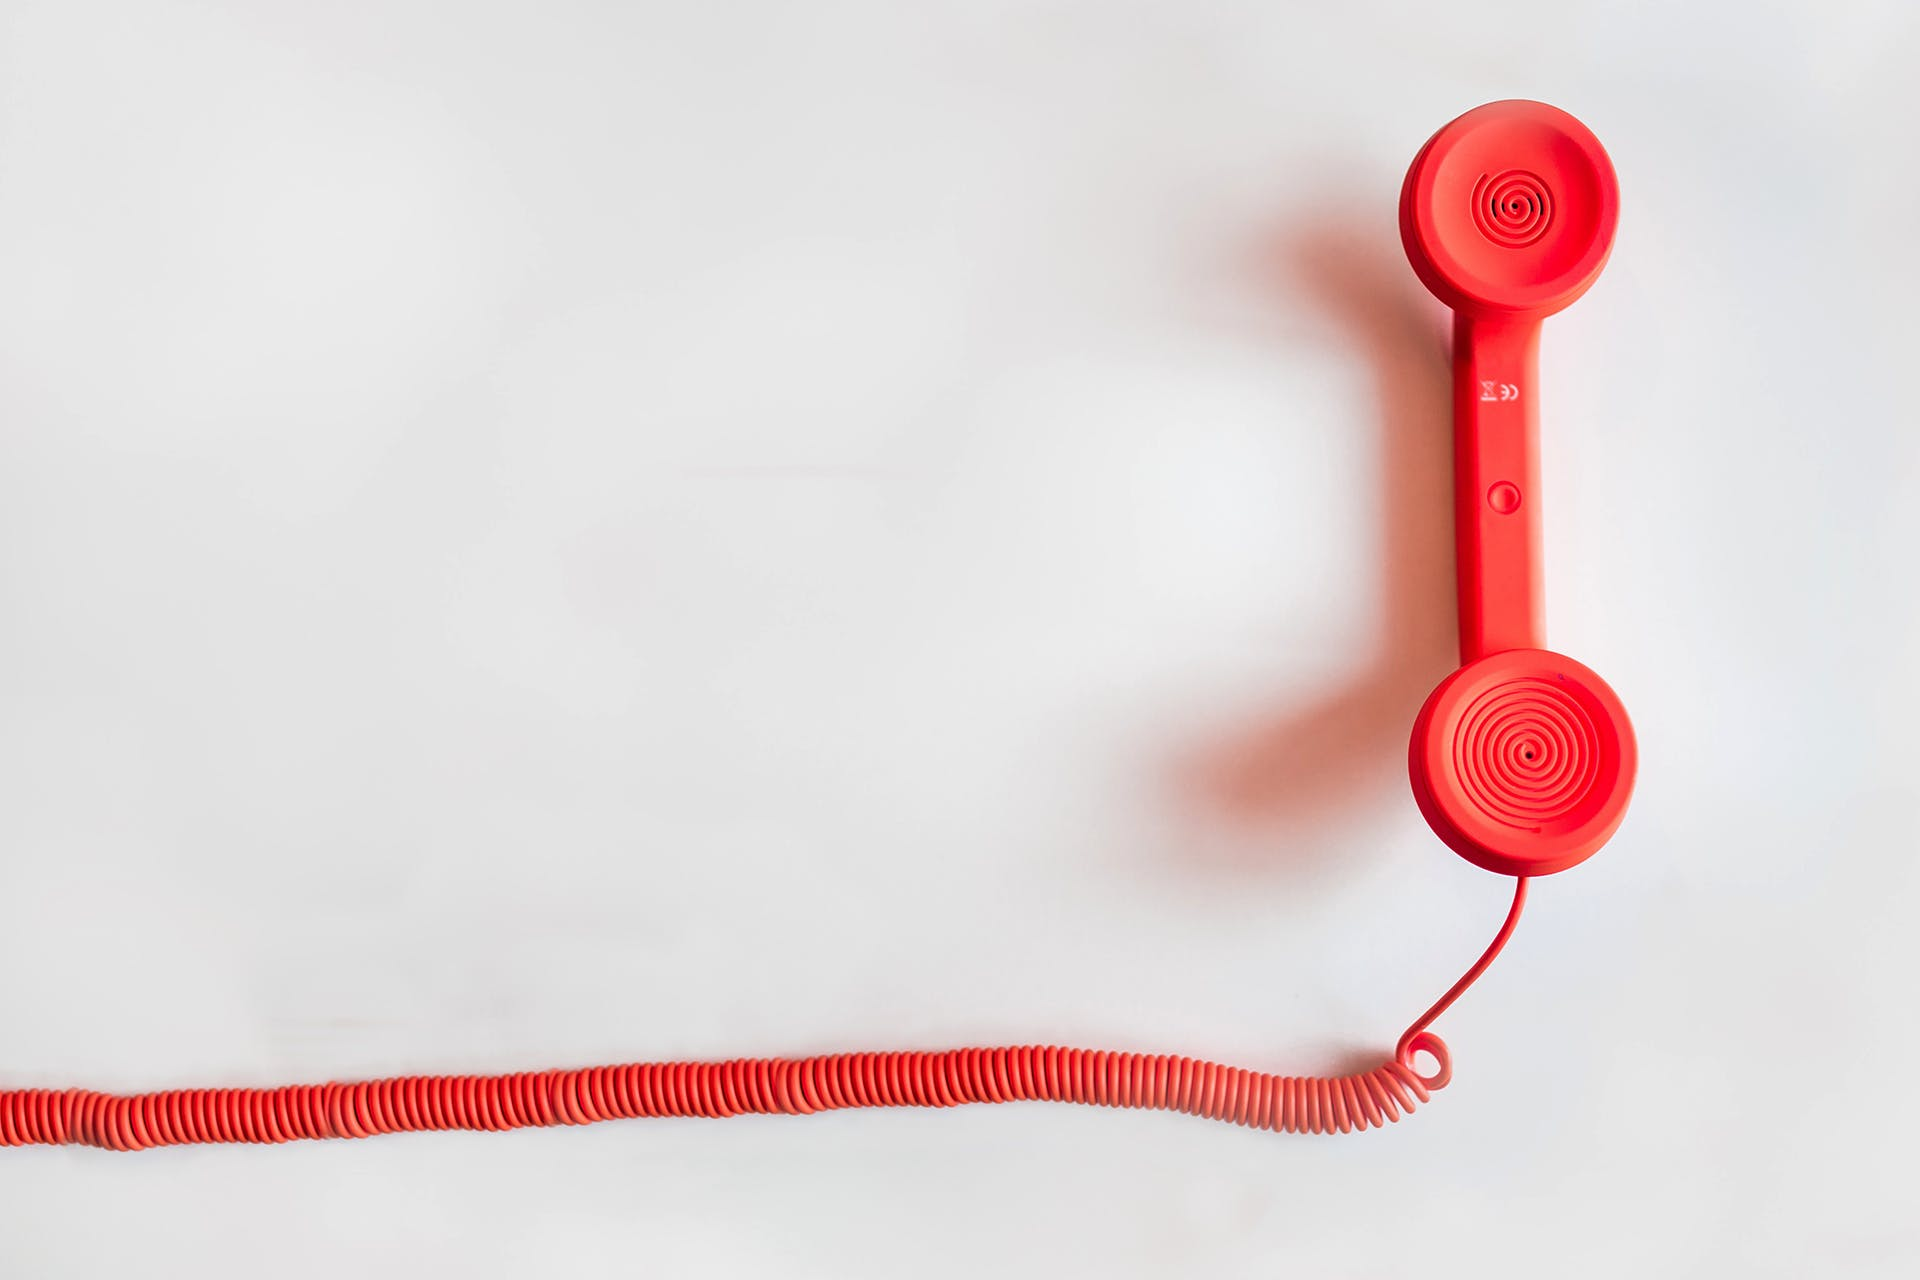 Red telephone against a white background